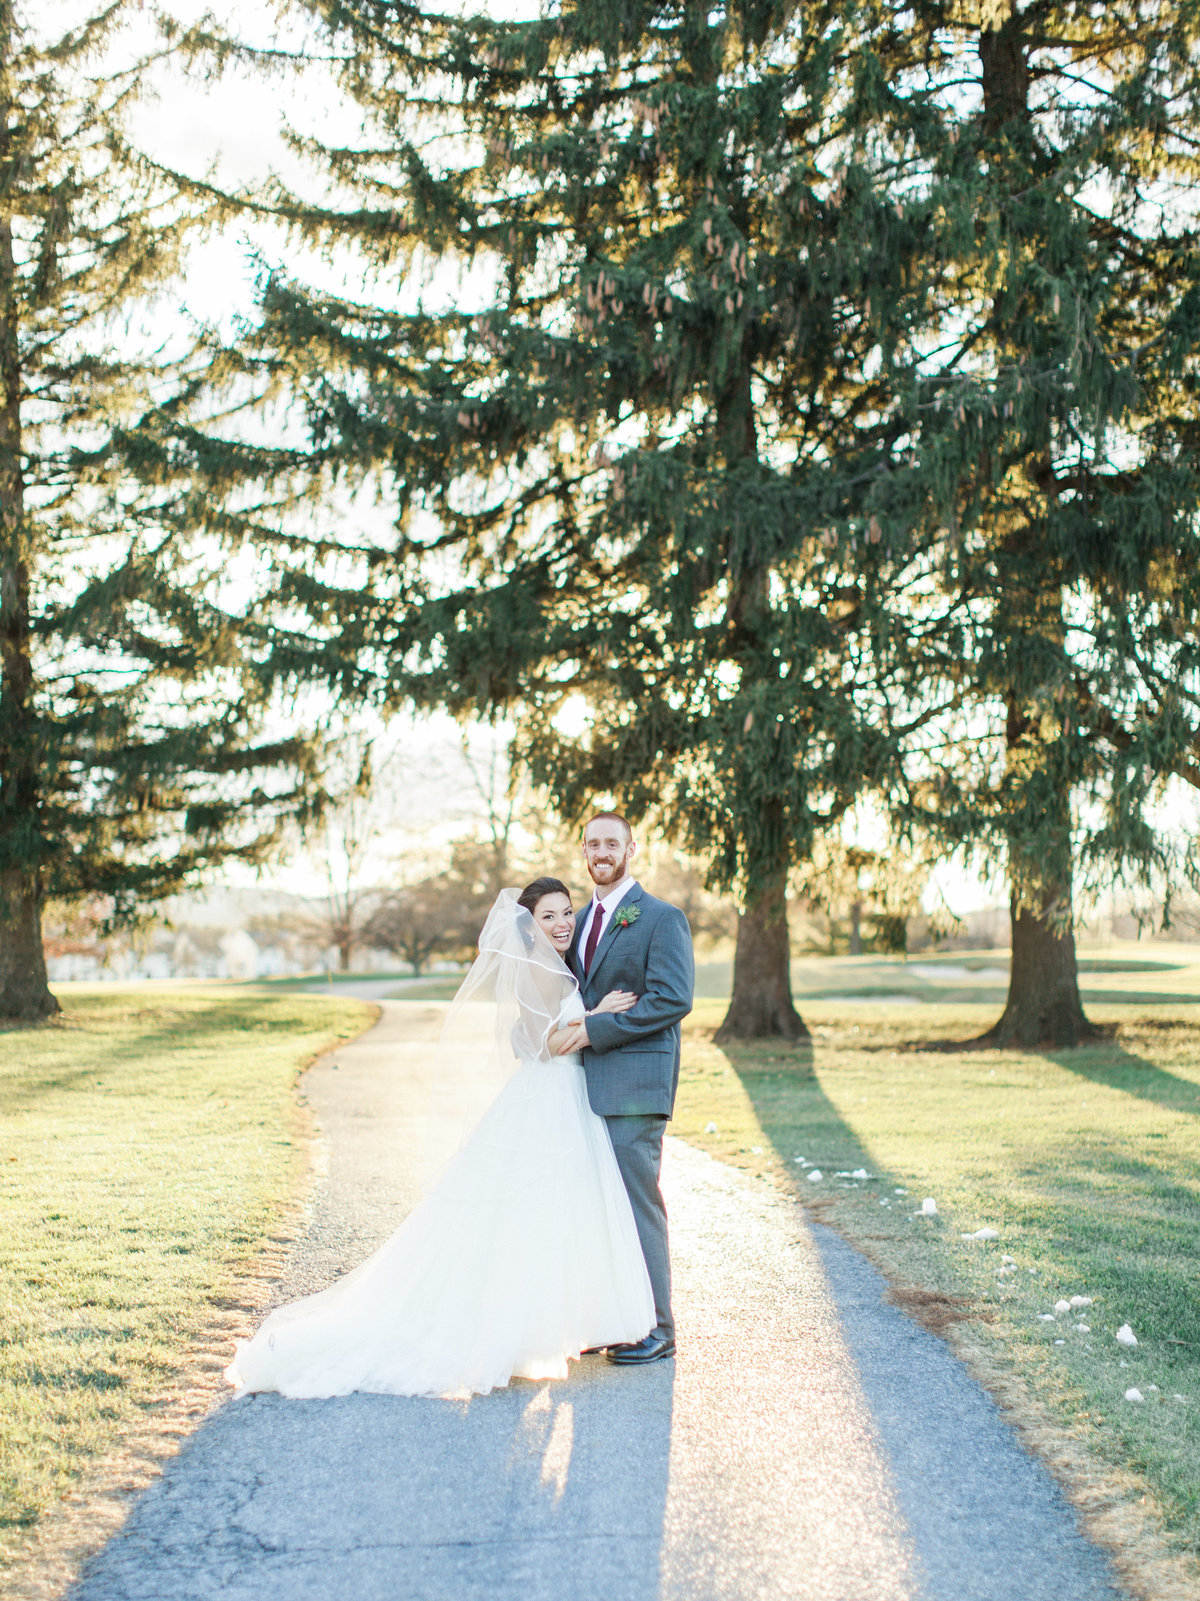 ©holeighvphotography_Maggie&SteveWeddingGalleryCover-66